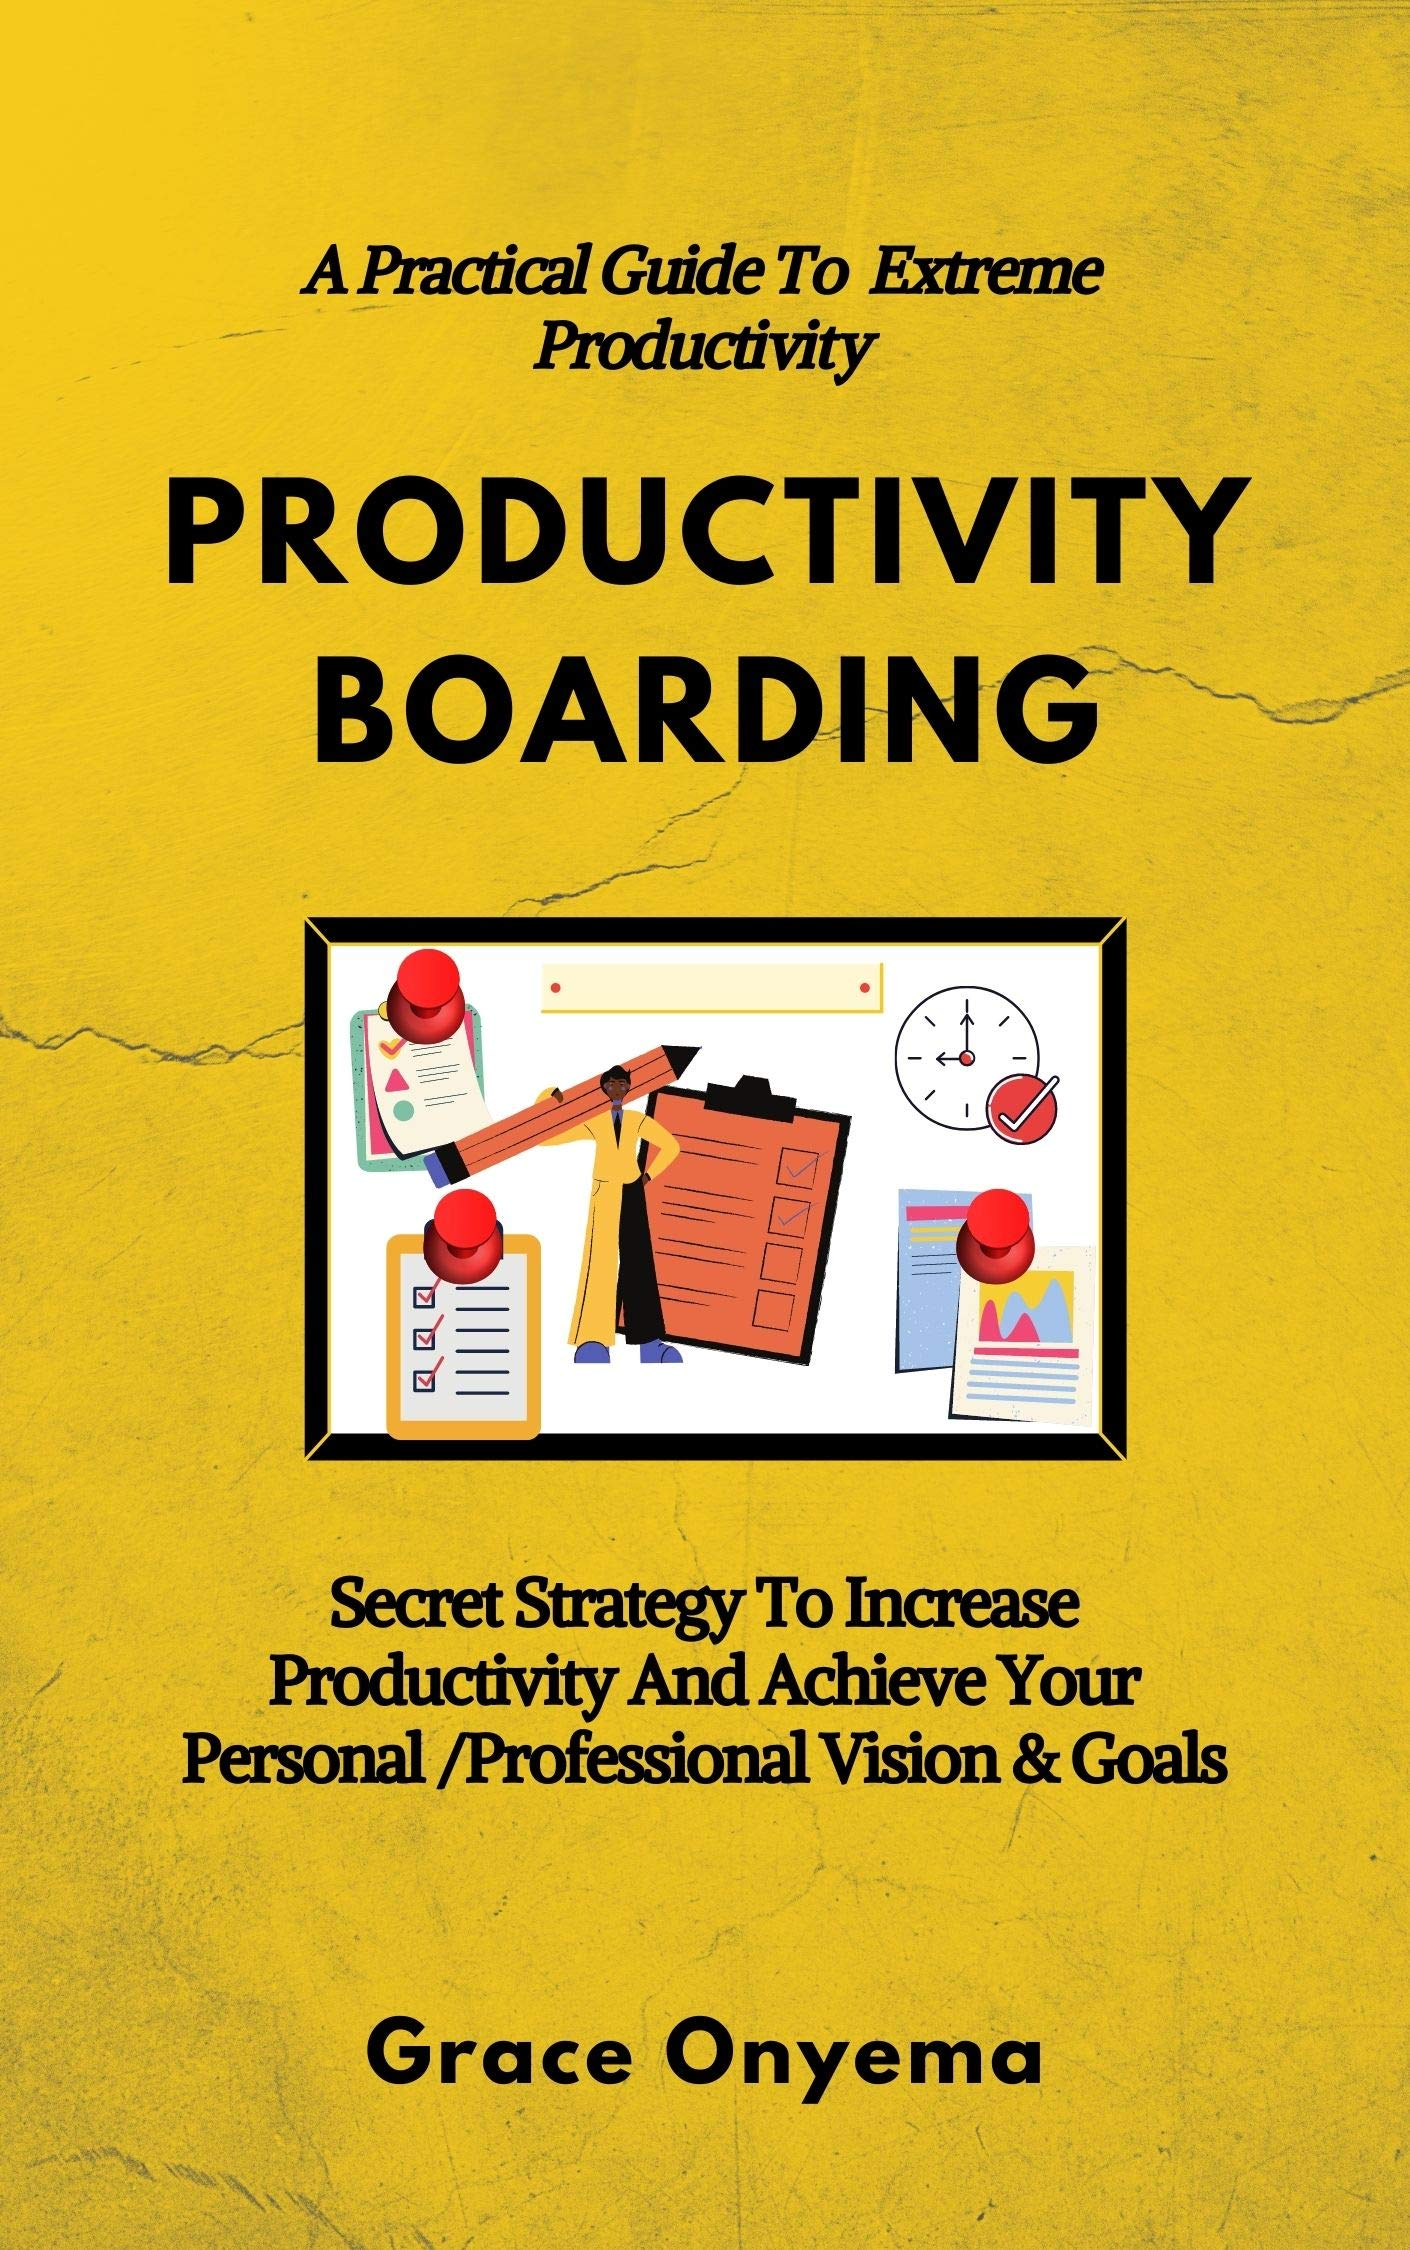 PRODUCTIVITY BOARDING: A Practical Guide To Extreme Productivity: Secret Strategy To Increase Productivity And Achieve Your Personal/Professional Vision & Goals